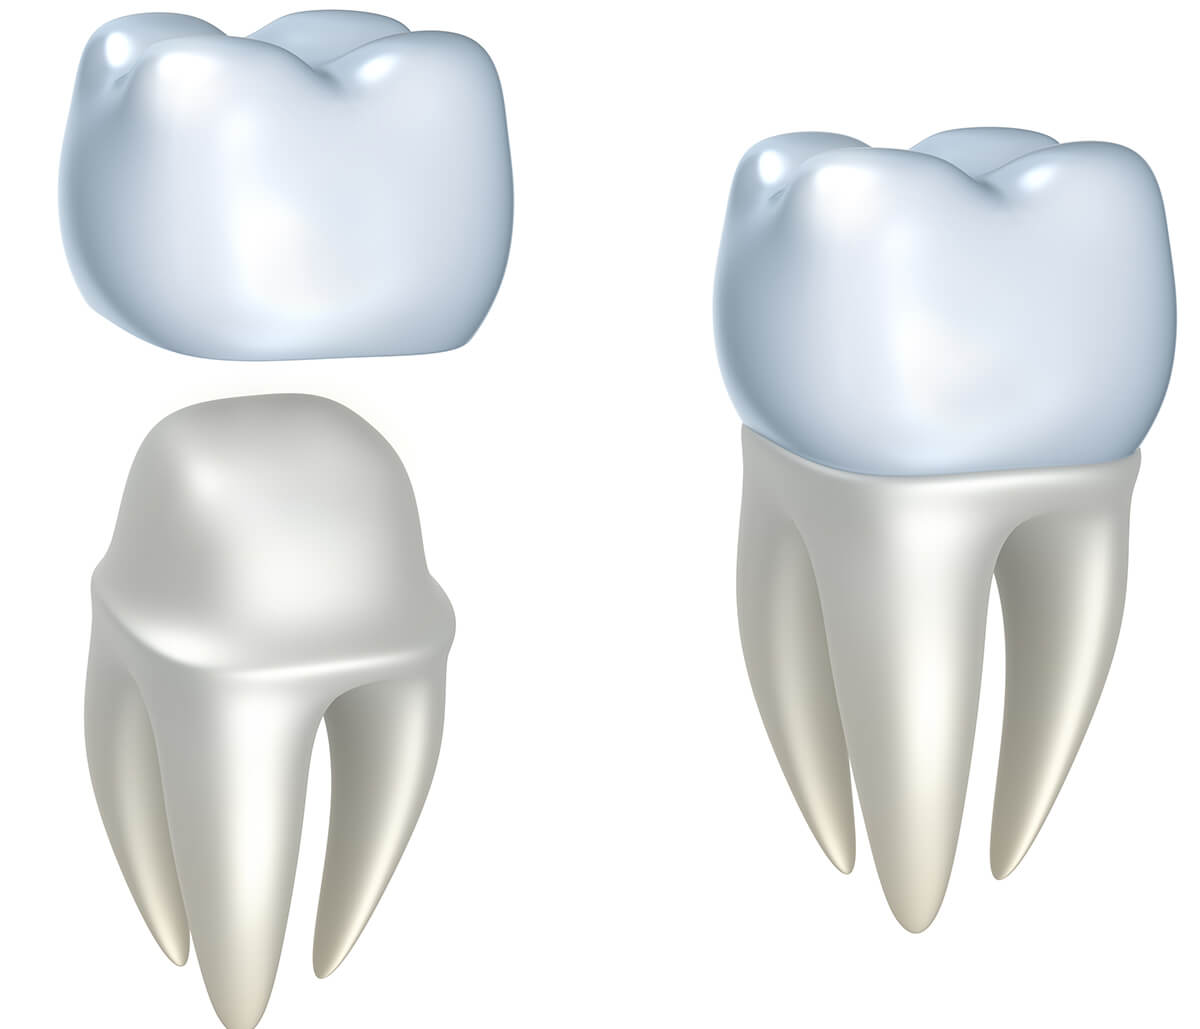 Crowns for Teeth in Houston Texas Area